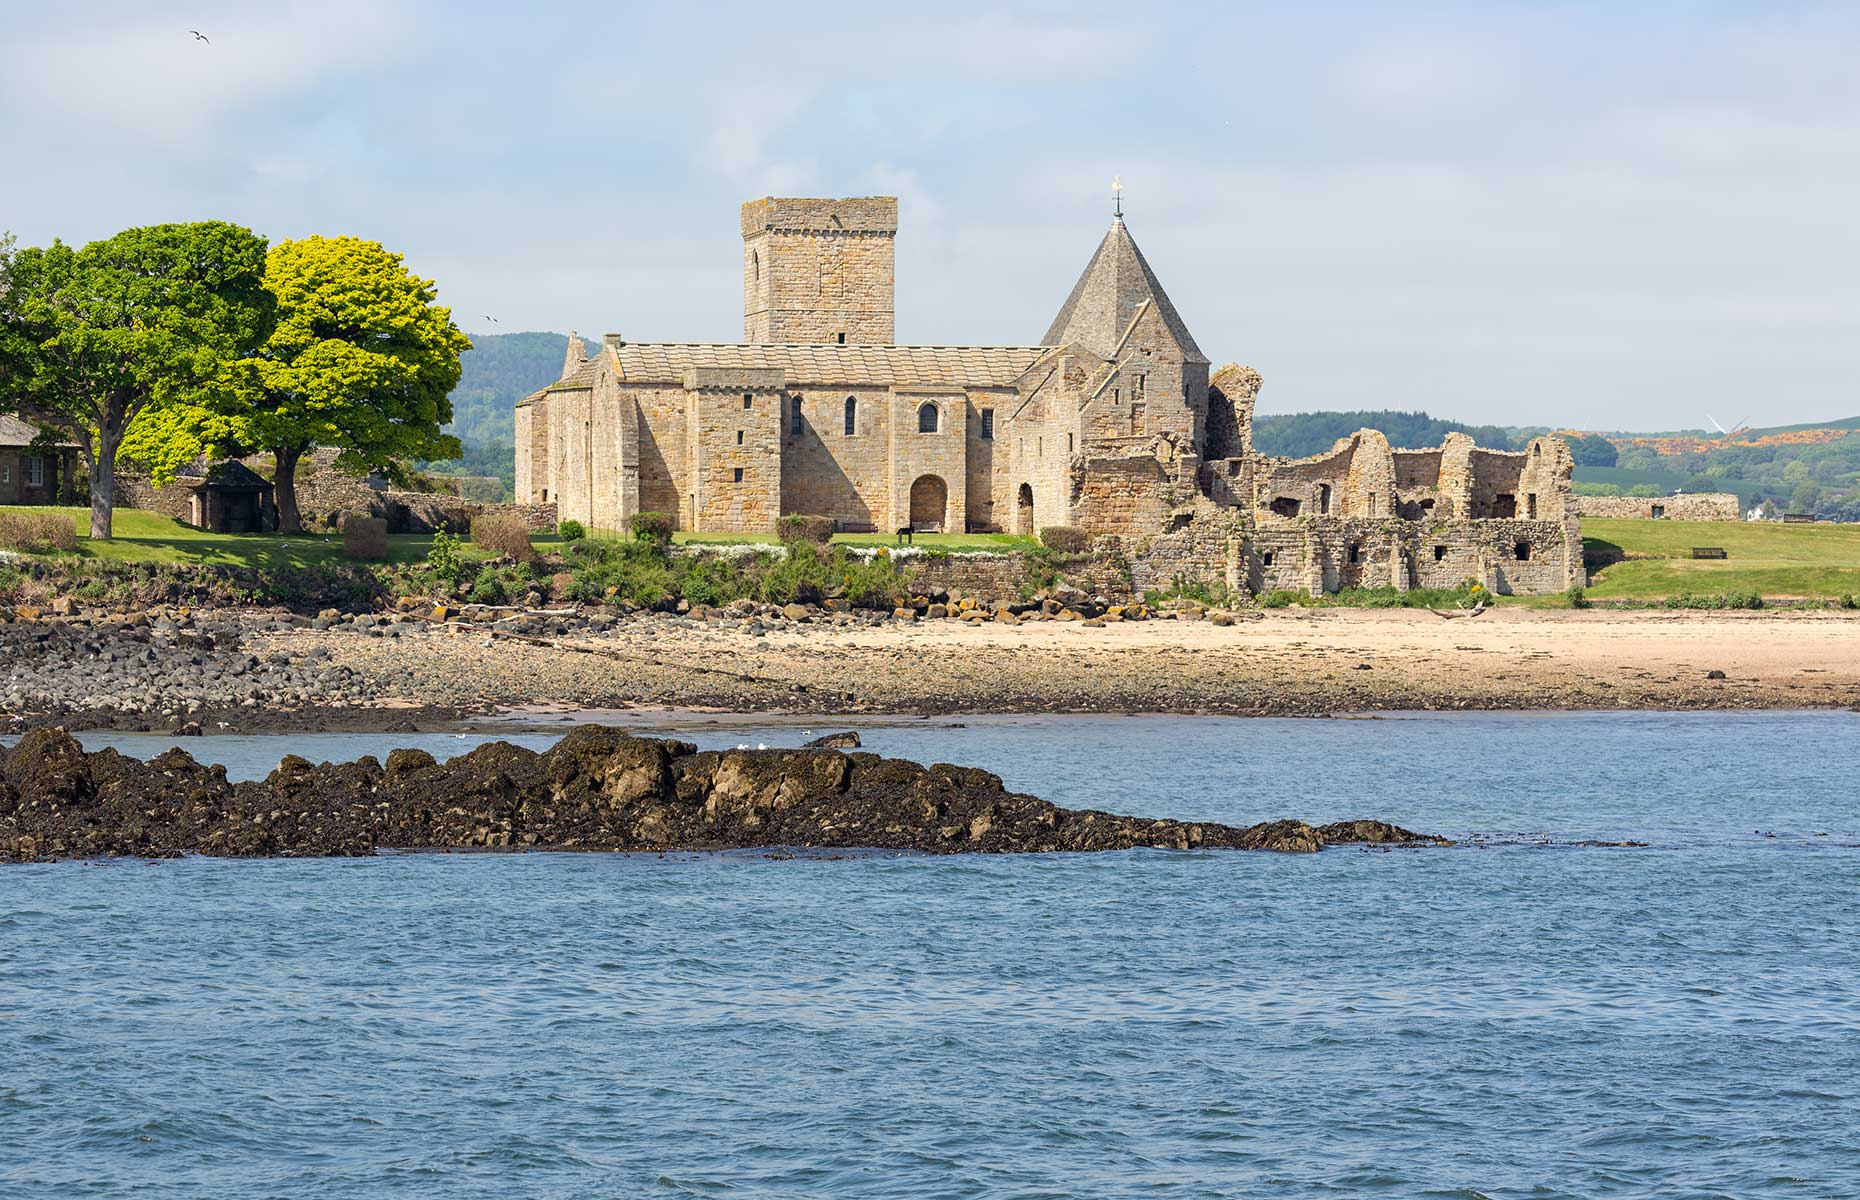 Abbey at the isle of Inchcolm near South Queensferry, Edinburgh, Scotland (Image: T.W. van Urk/Shutterstock)